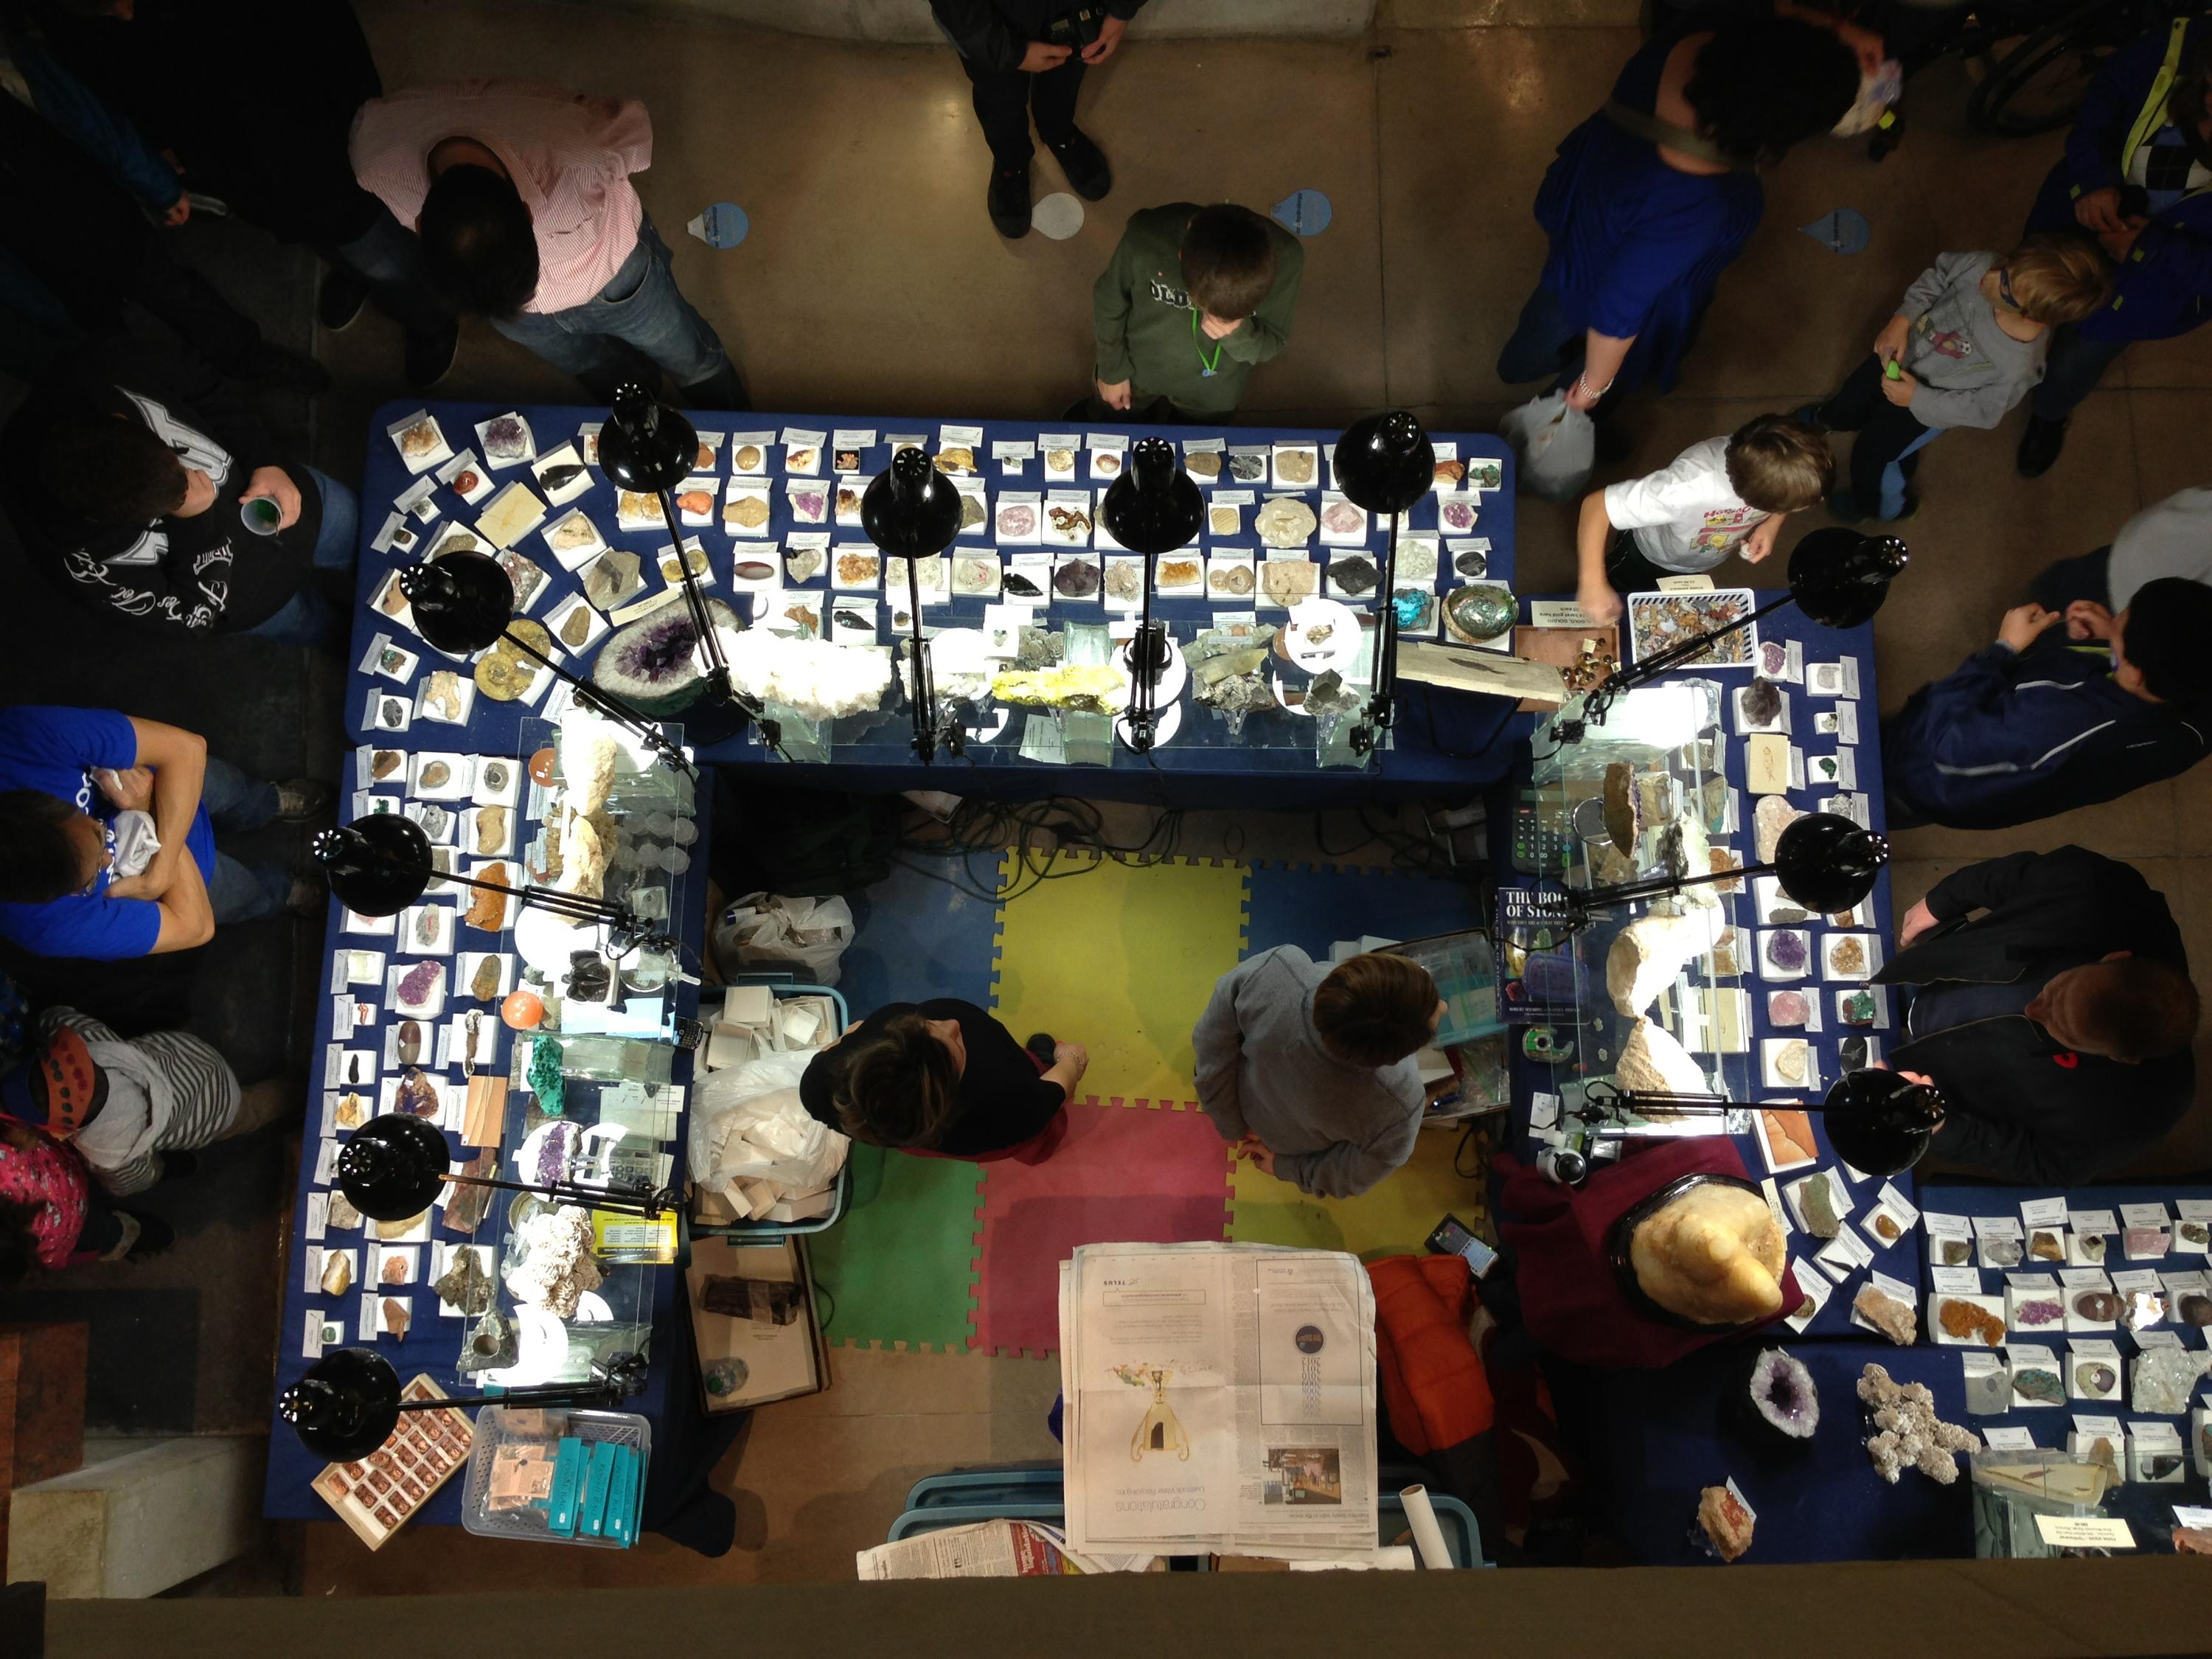 Photo of mineral vendor table from above